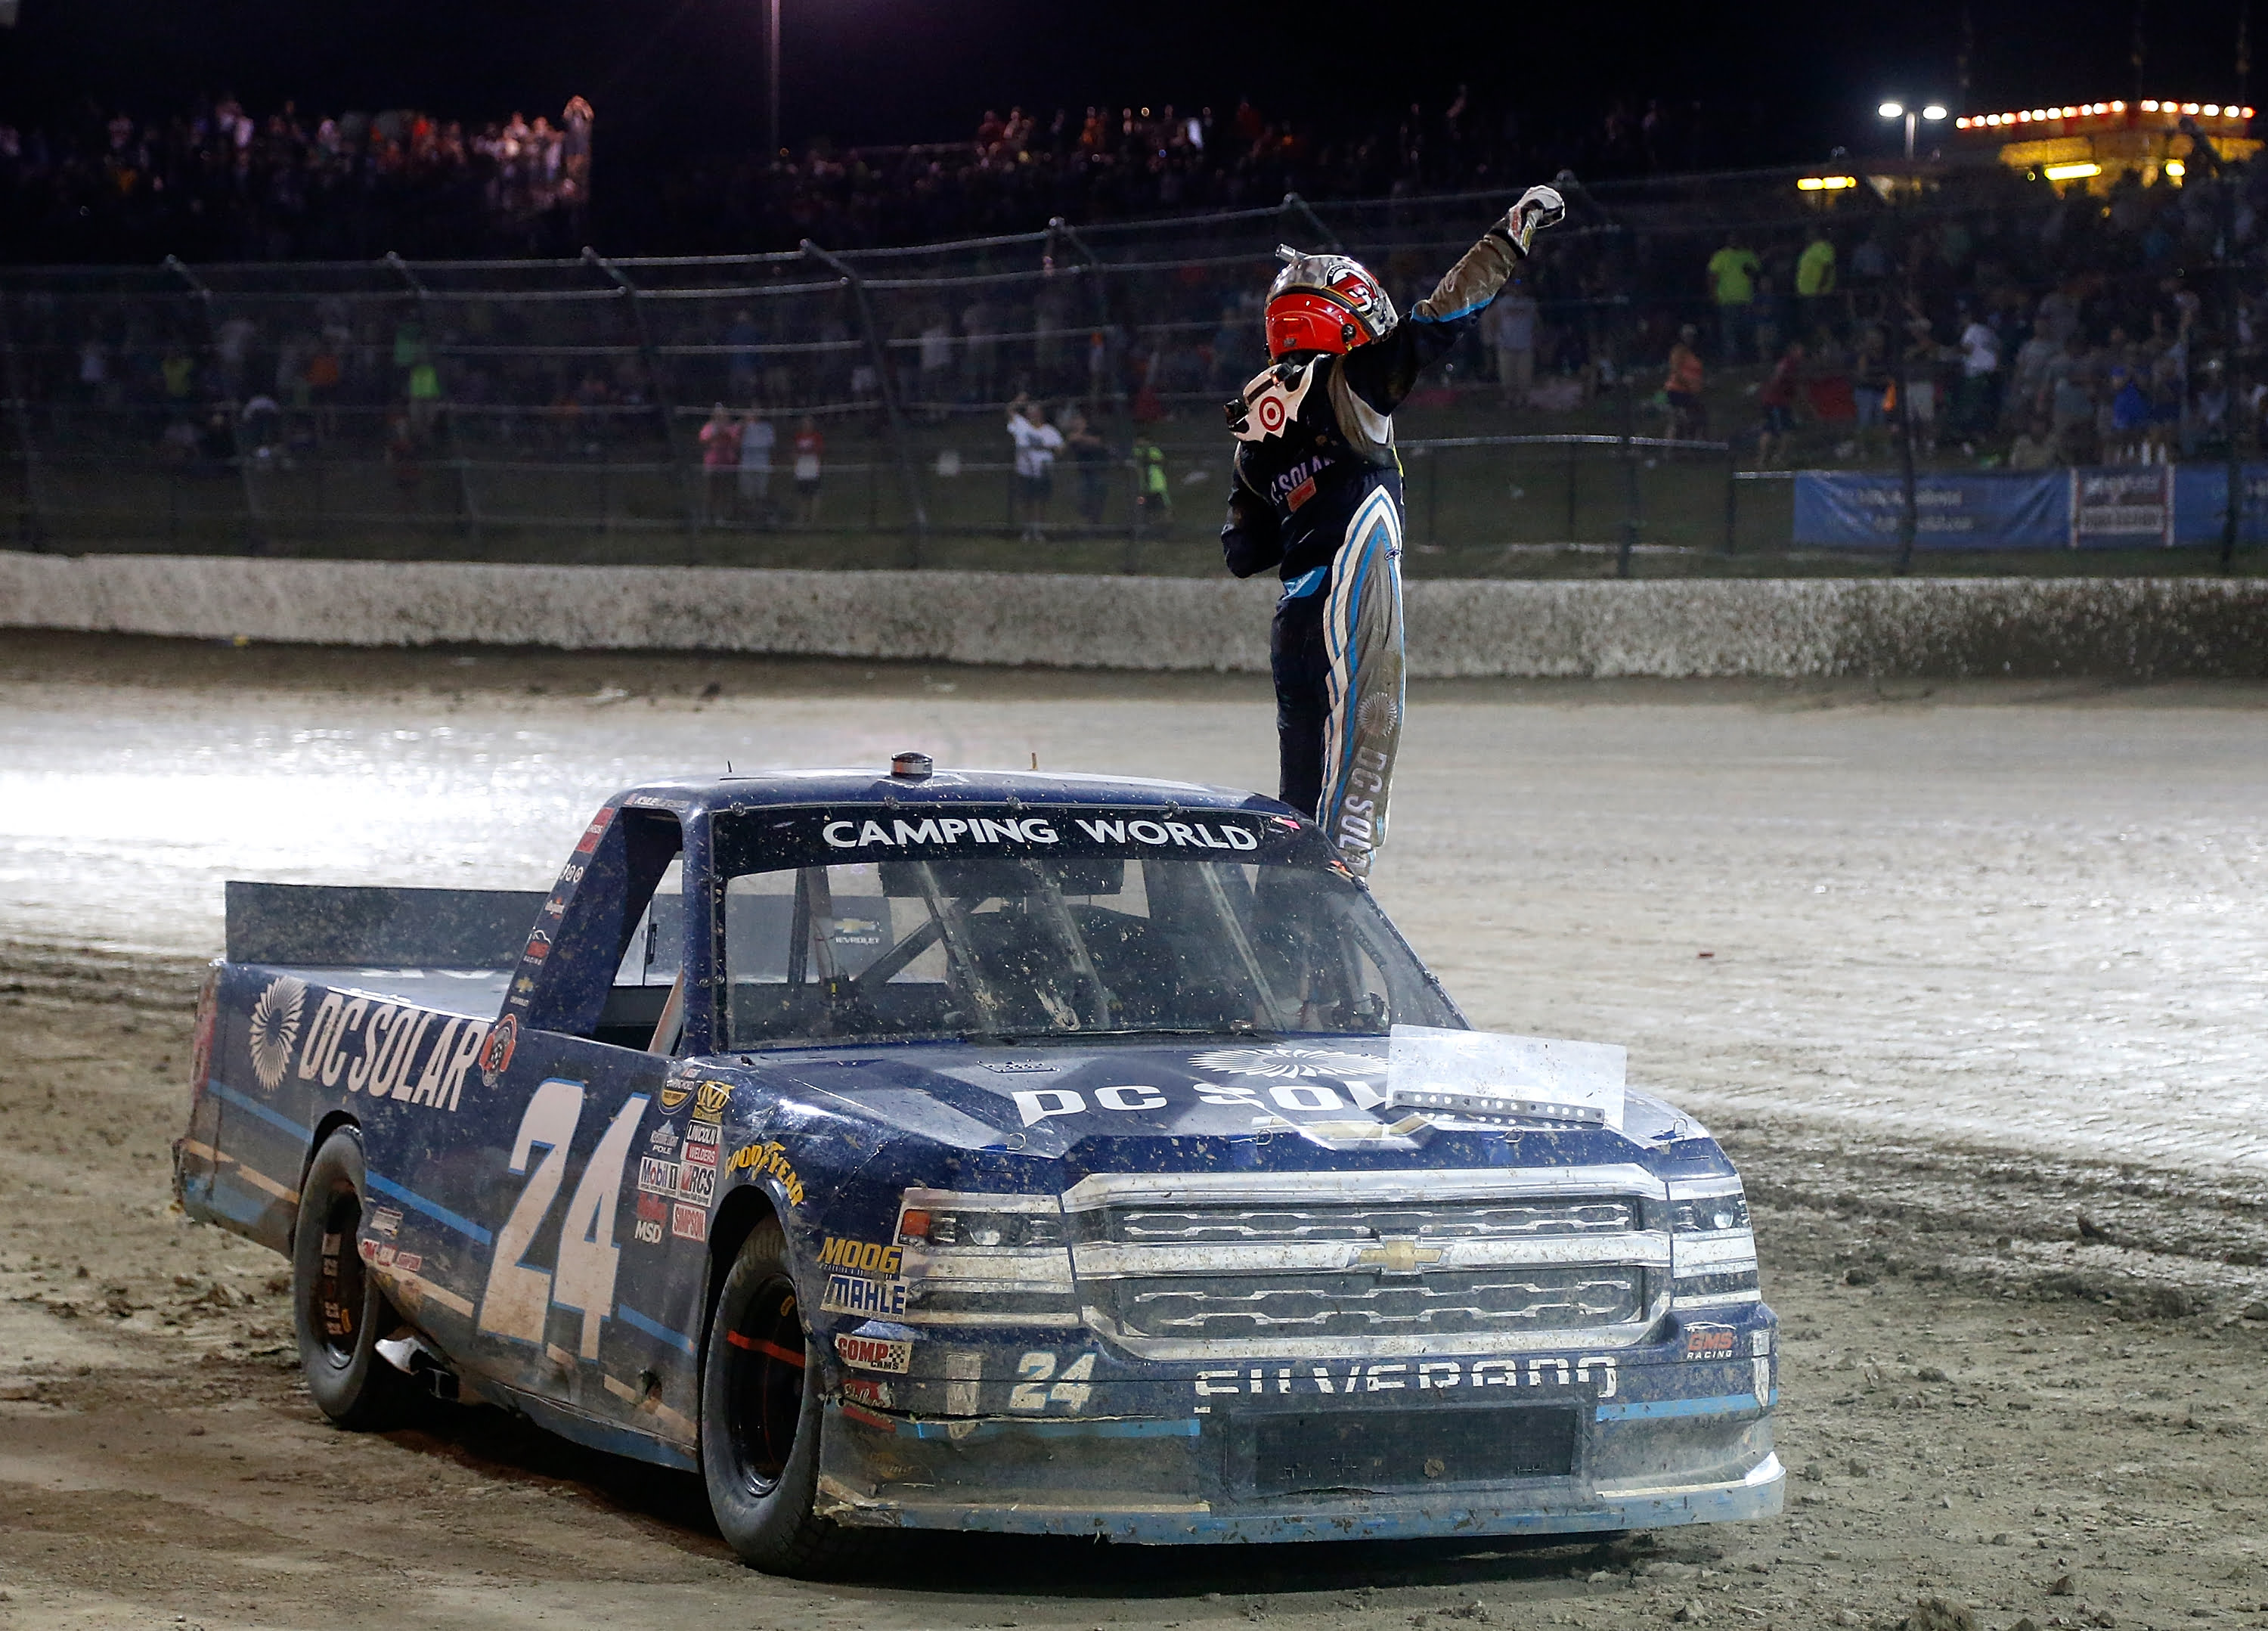 Kyle Larson charges through field to capture Eldora win